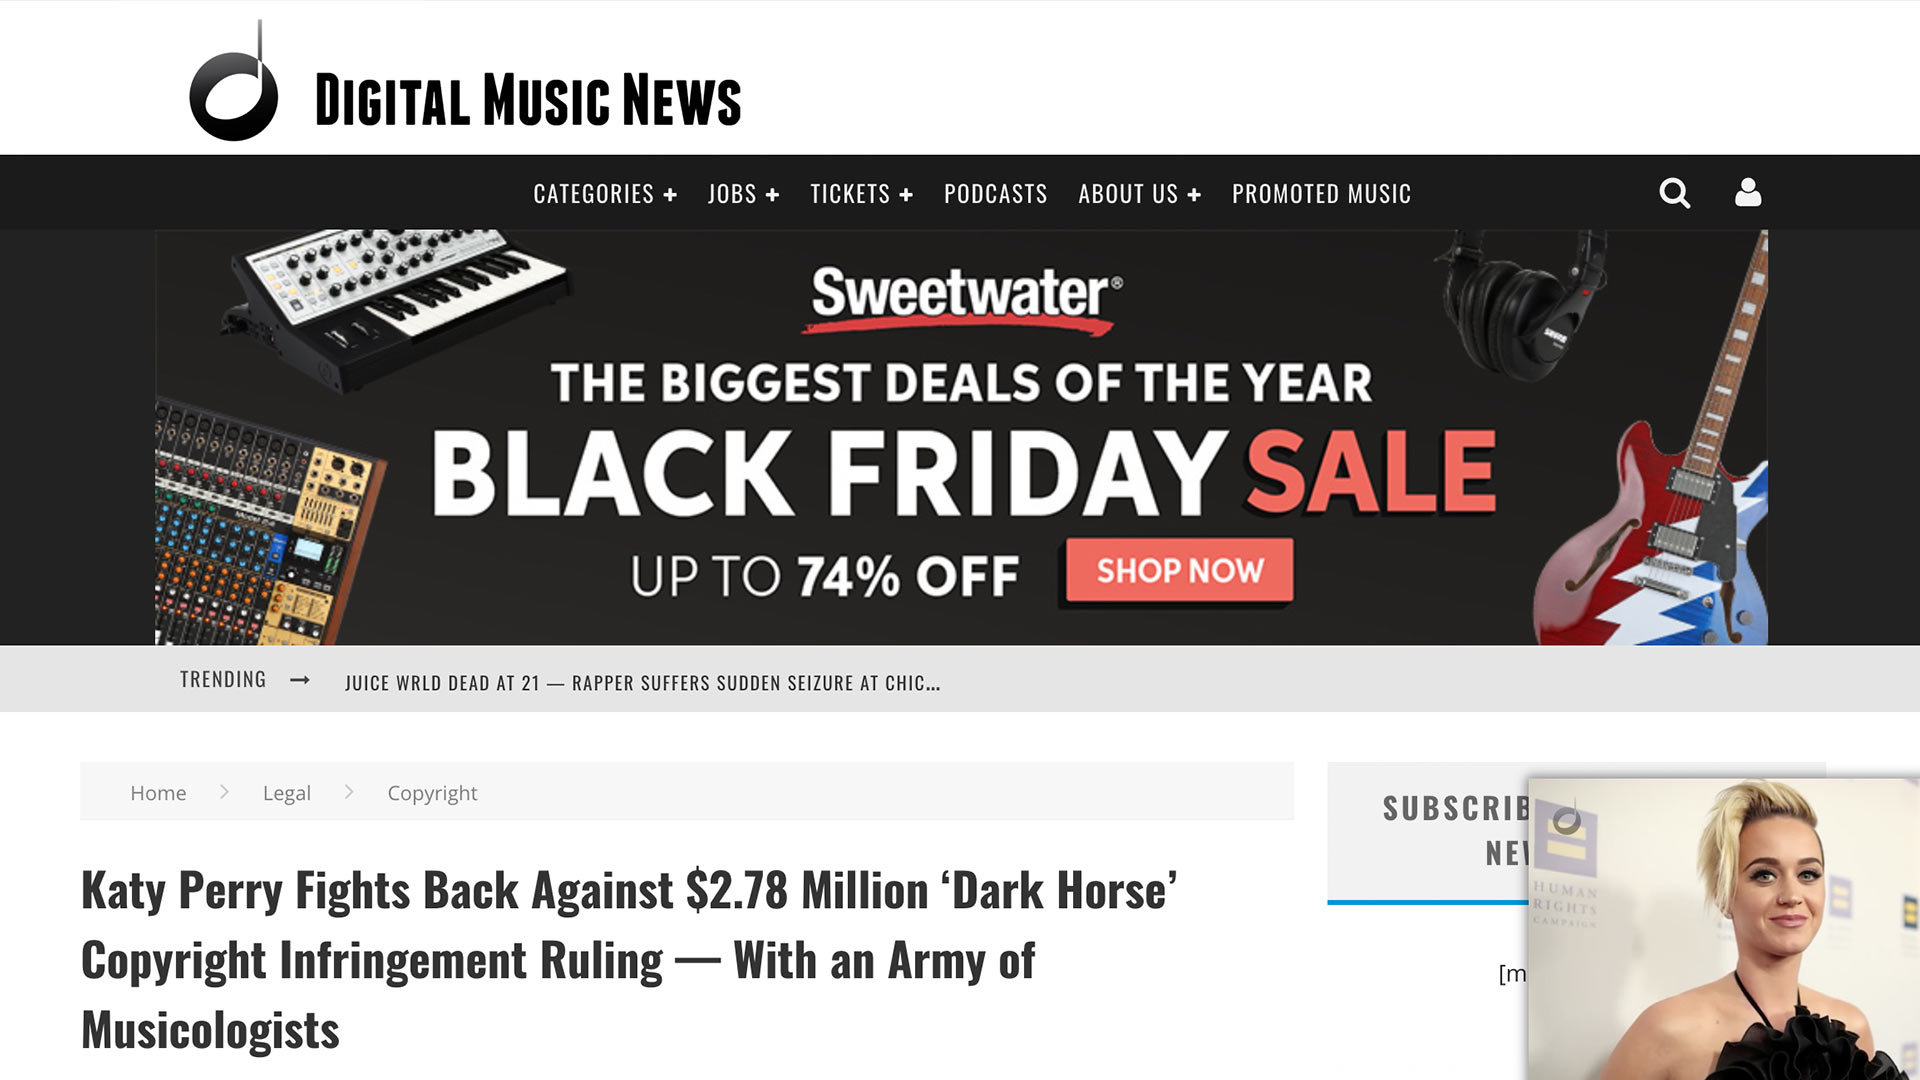 Fairness Rocks News Katy Perry Fights Back Against $2.78 Million 'Dark Horse' Copyright Infringement Ruling — With an Army of Musicologists